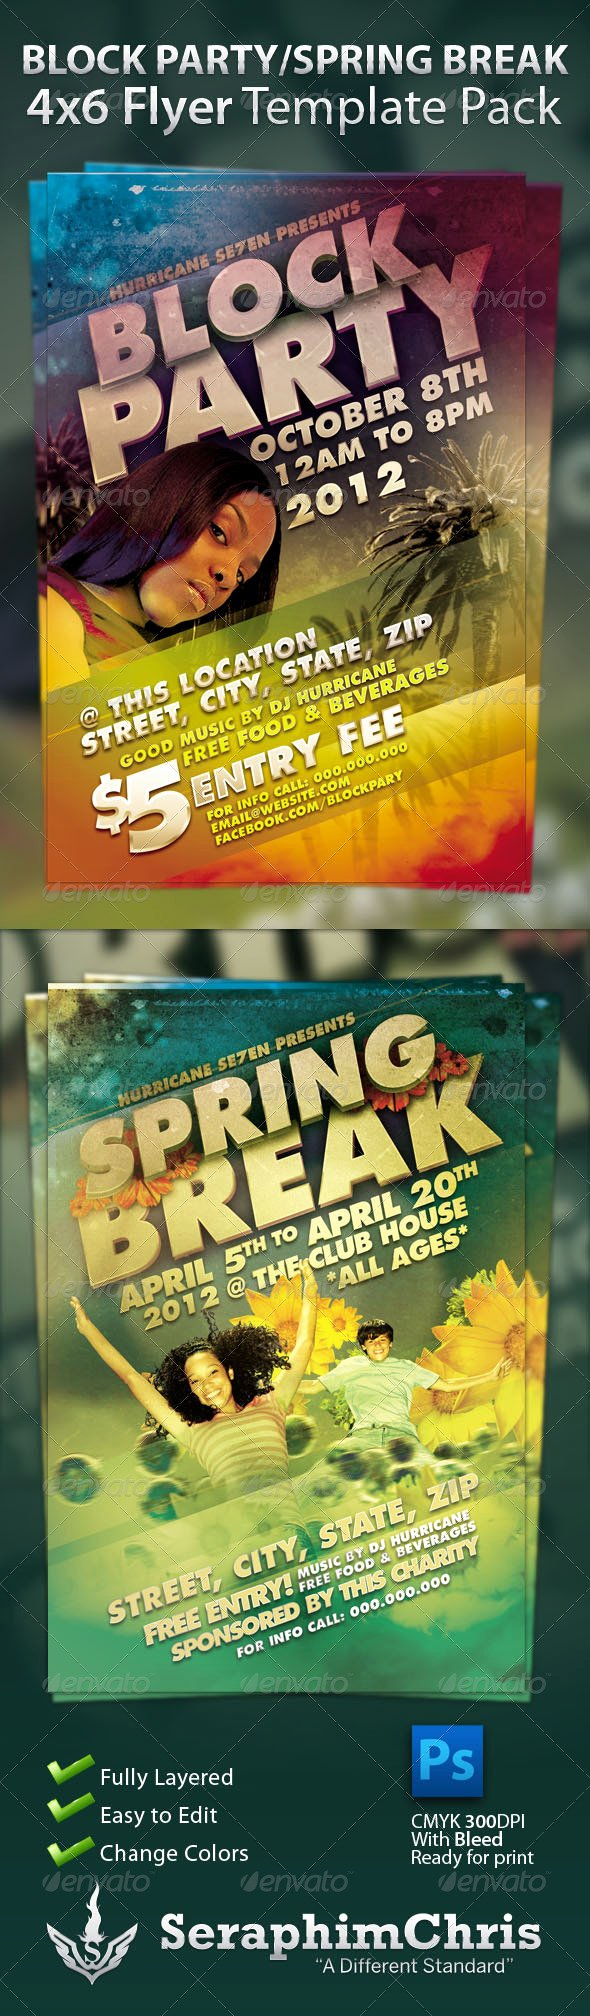 Block Party Flyer Templates New Block Party and Spring Break Flyer Template Pack by Seraphimchris